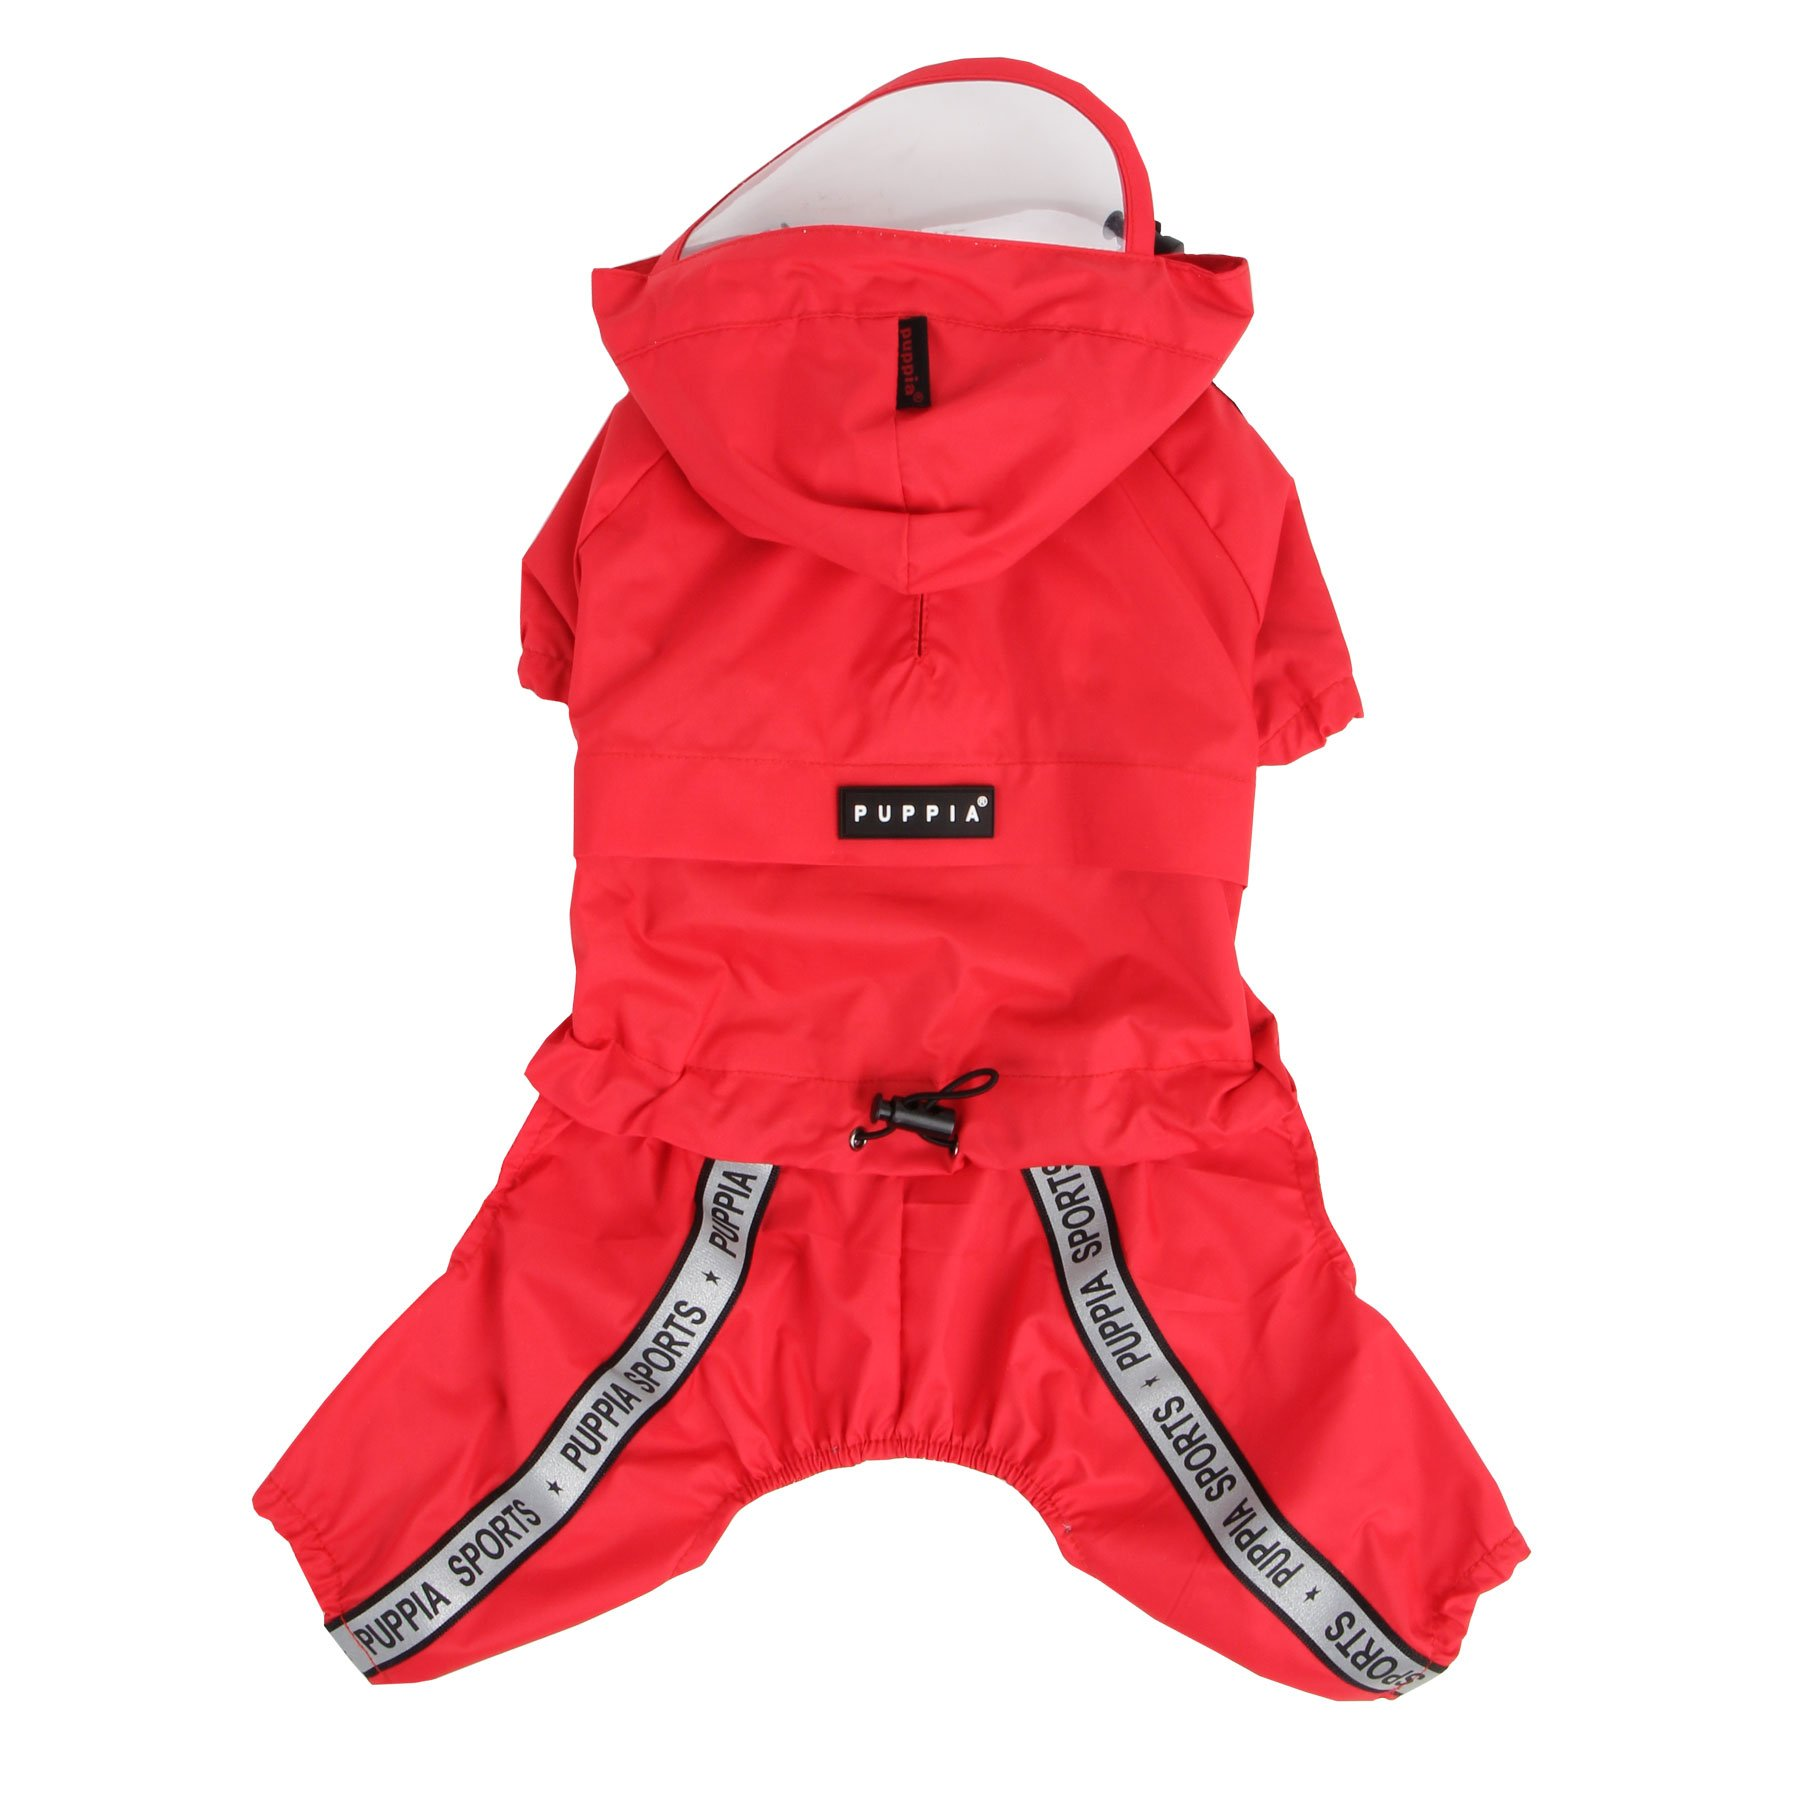 Authentic Puppia Race Track Hooded Jumpsuit, Red, Medium